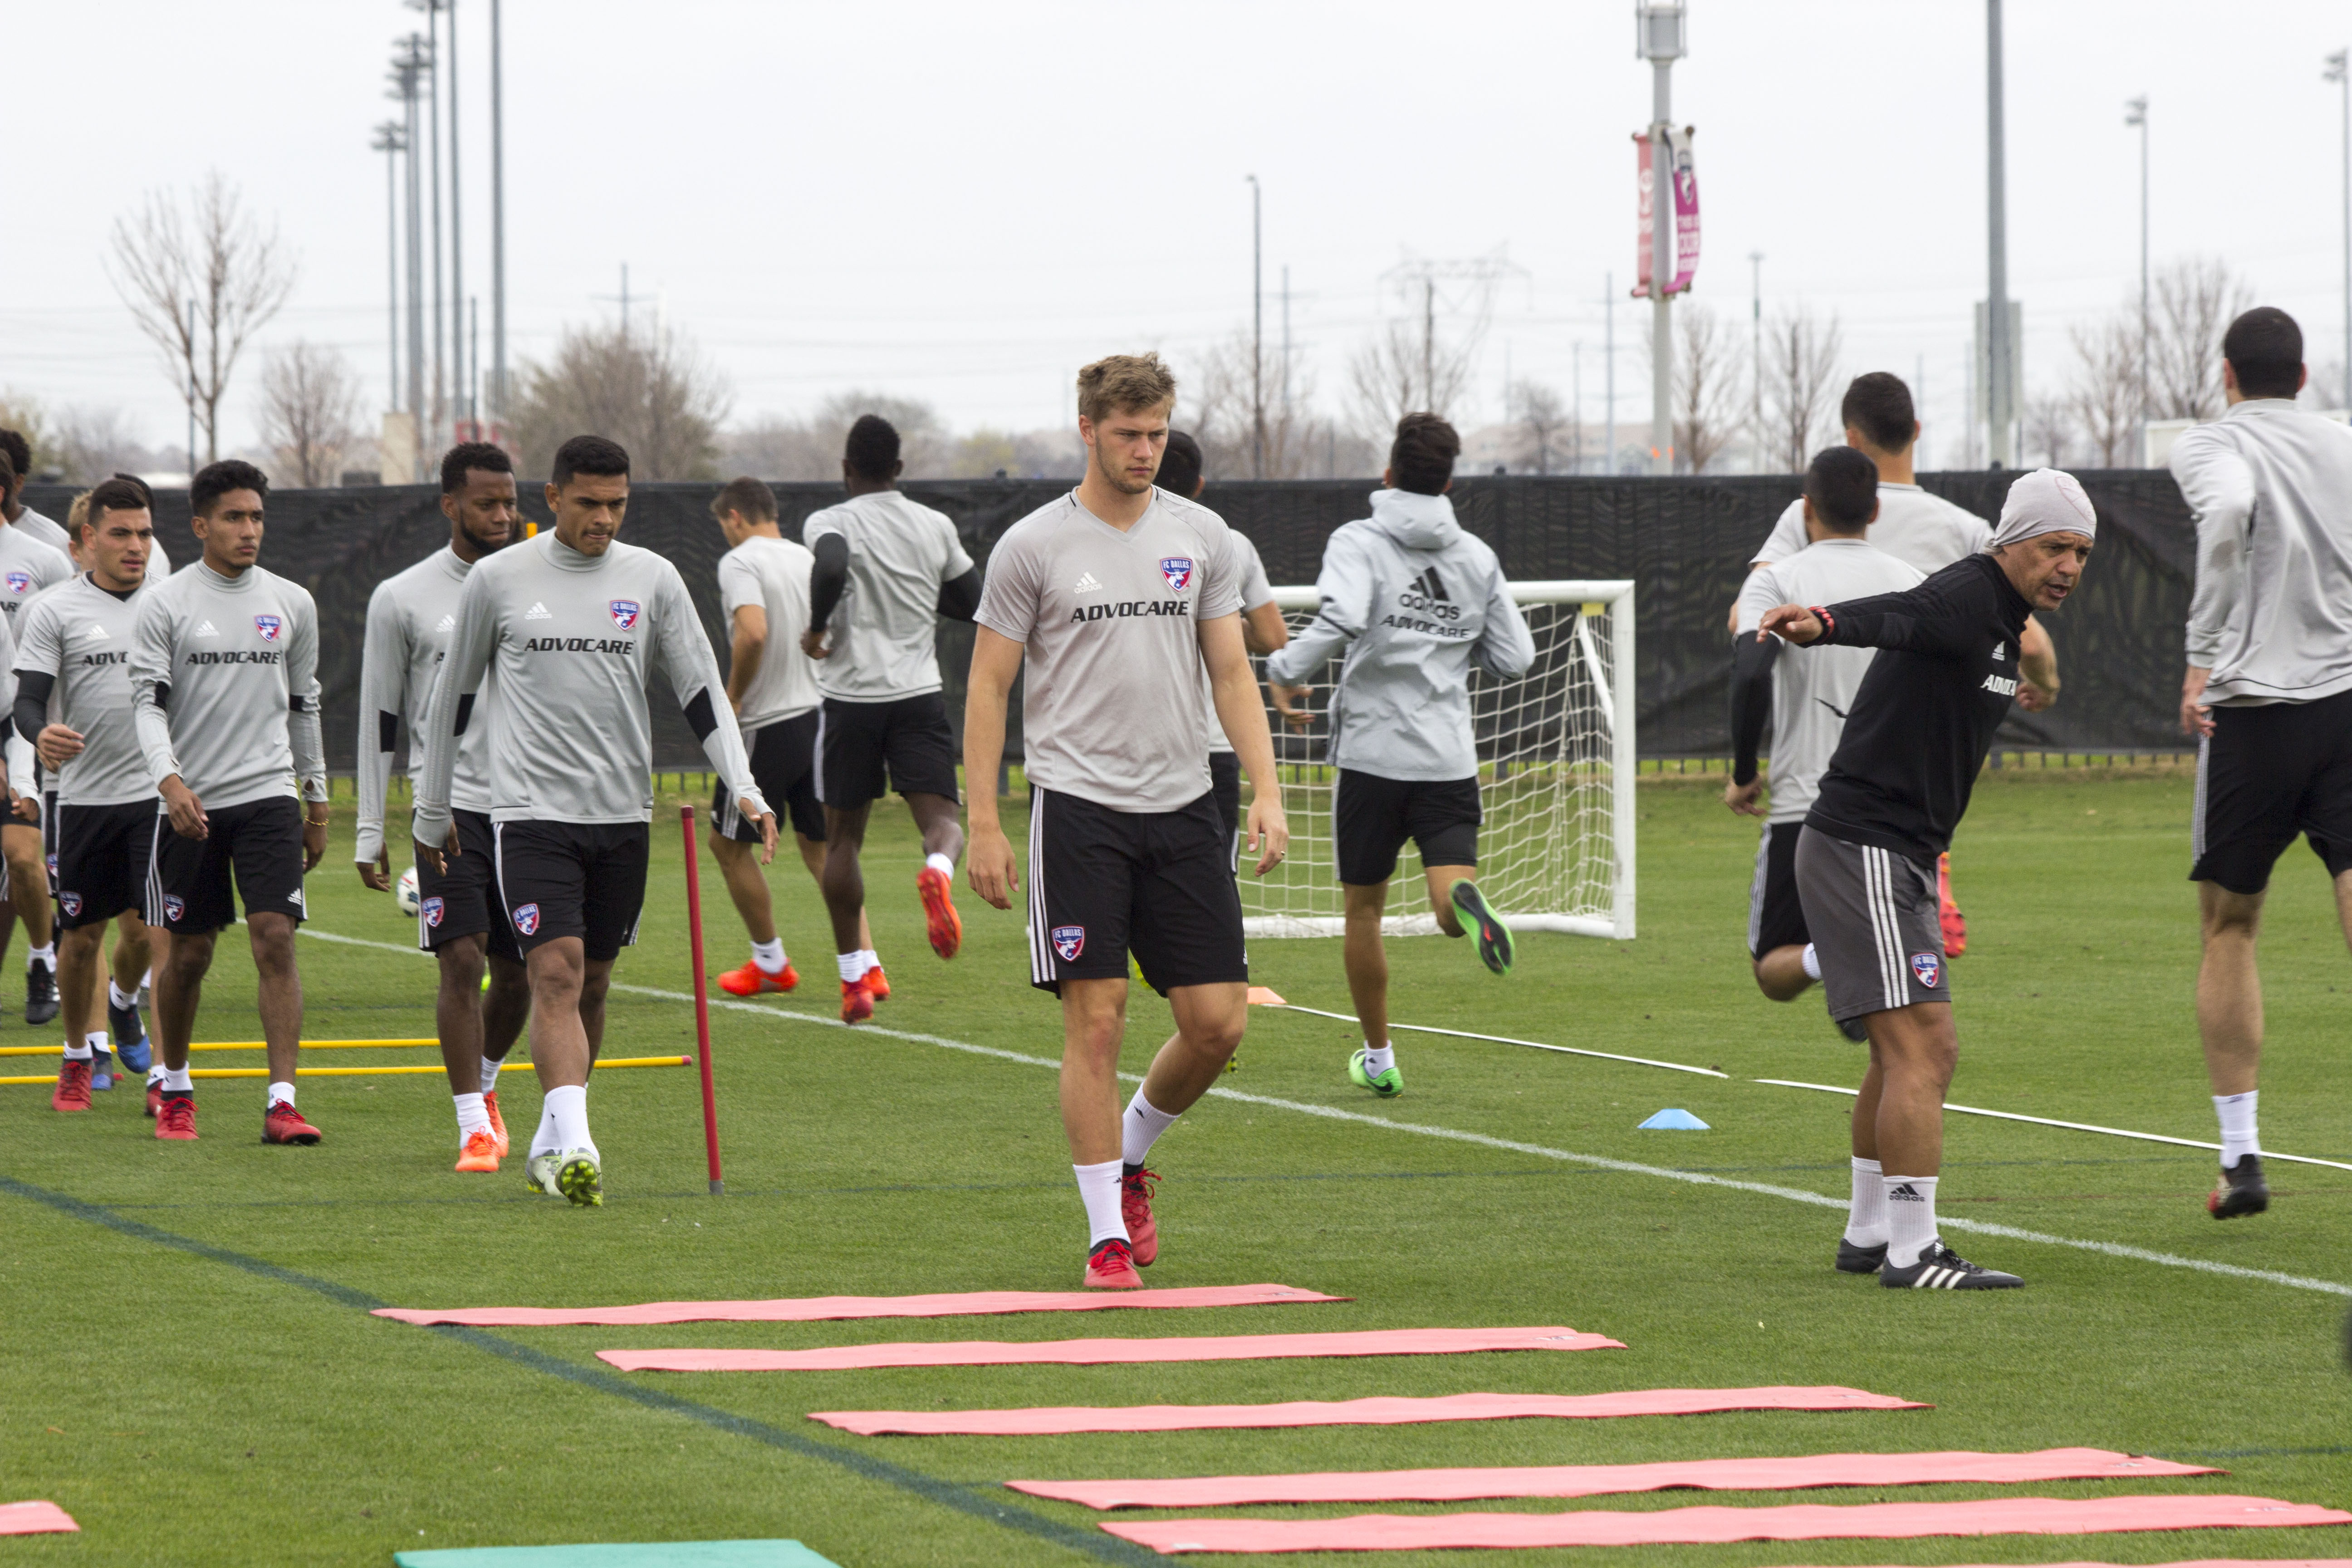 Fc Dallas Training Update Sporting Kc besides Download Pics 2014 in addition Photos Les Plus Incroyables Jo 2016 as well Colombia Recibe  o Heroes A Los Medallistas Olimpicos ed71a58ef8a29310VgnVCM3000009acceb0aRCRD furthermore Fc Dallas Training Update Sporting Kc. on oscar figueroa update